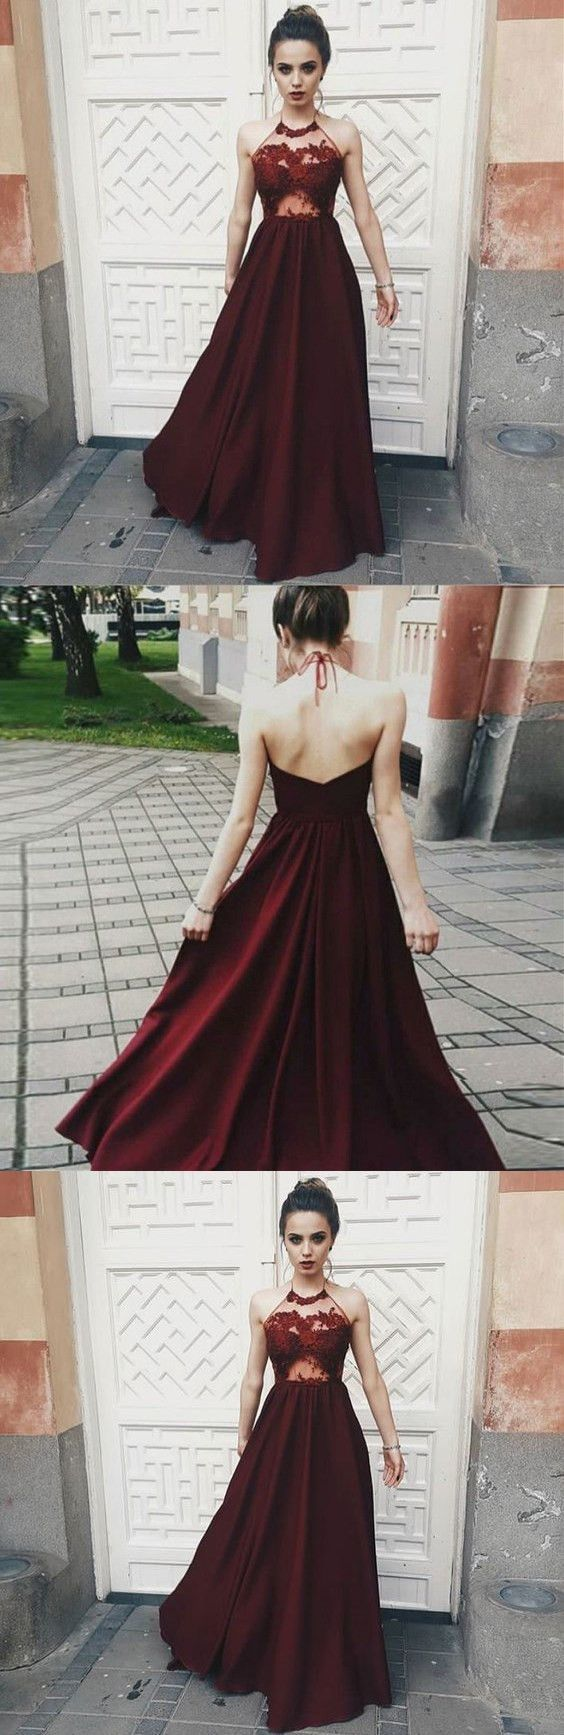 Romantic burgundy prom dress,red mesh lace Party Dress,Halter Top Evening